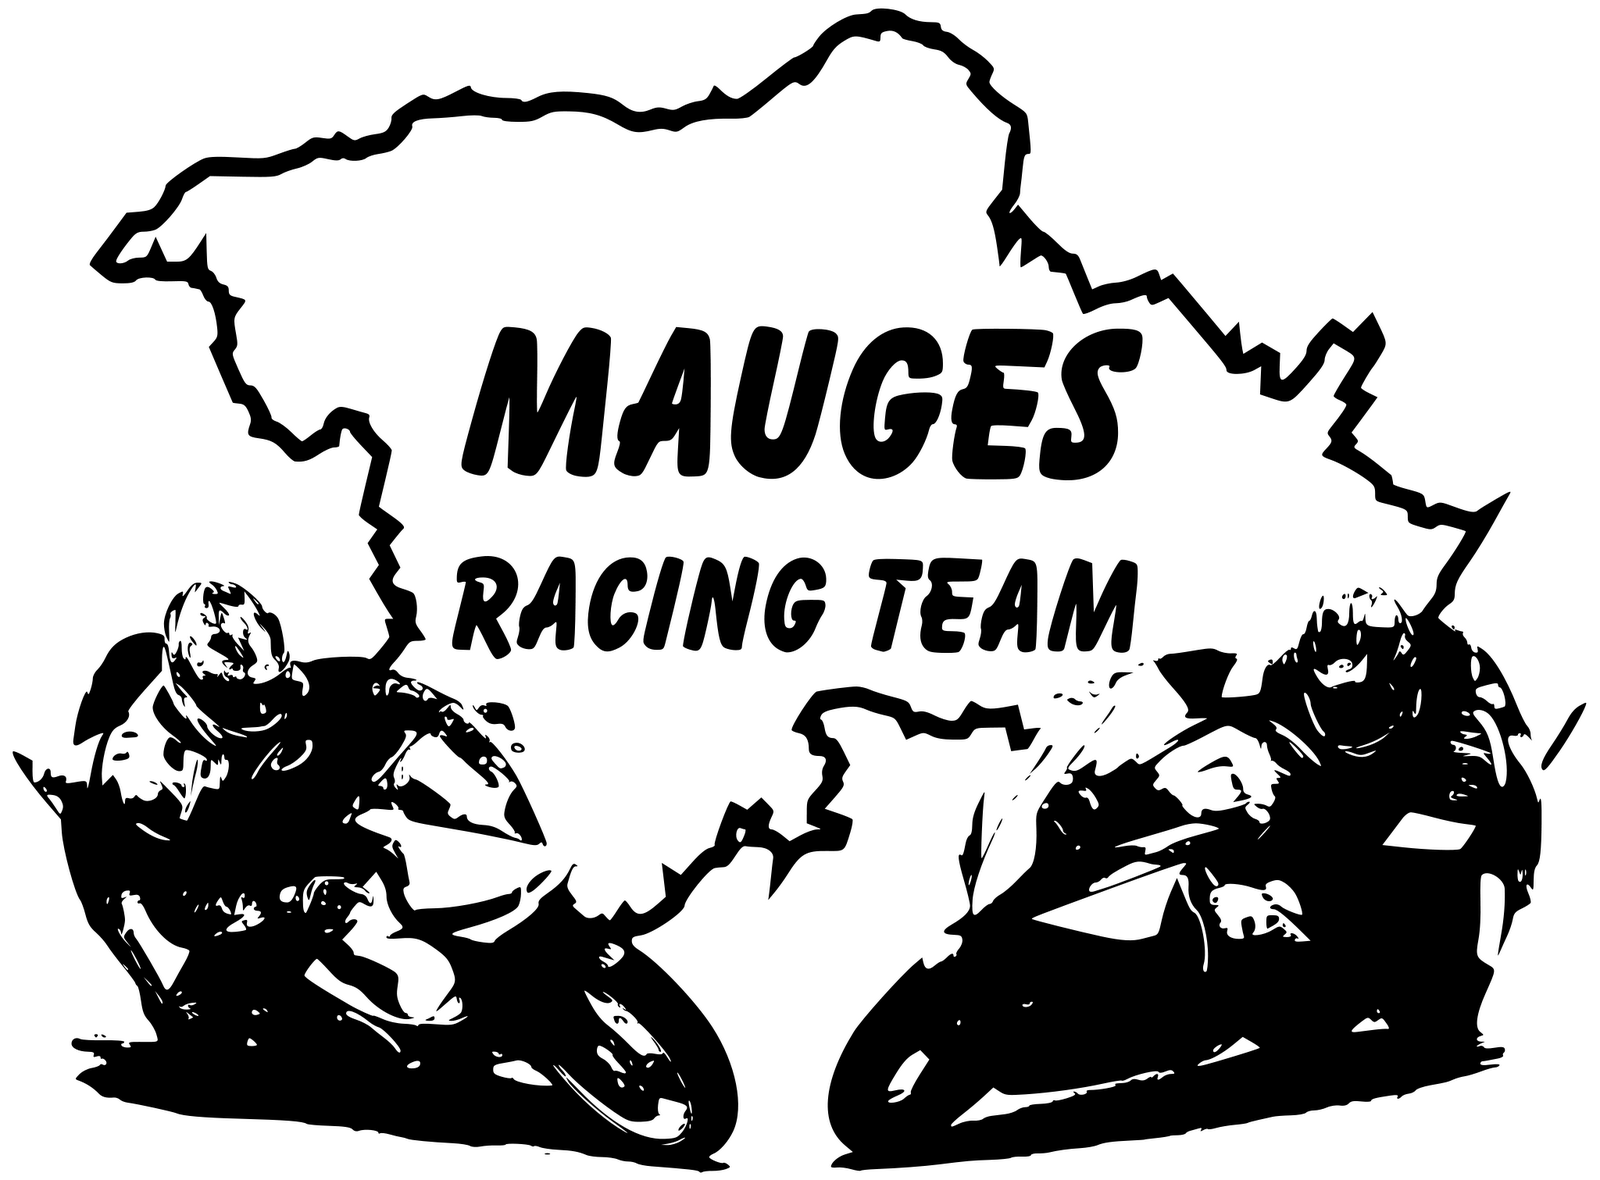 Mauges Racing Team